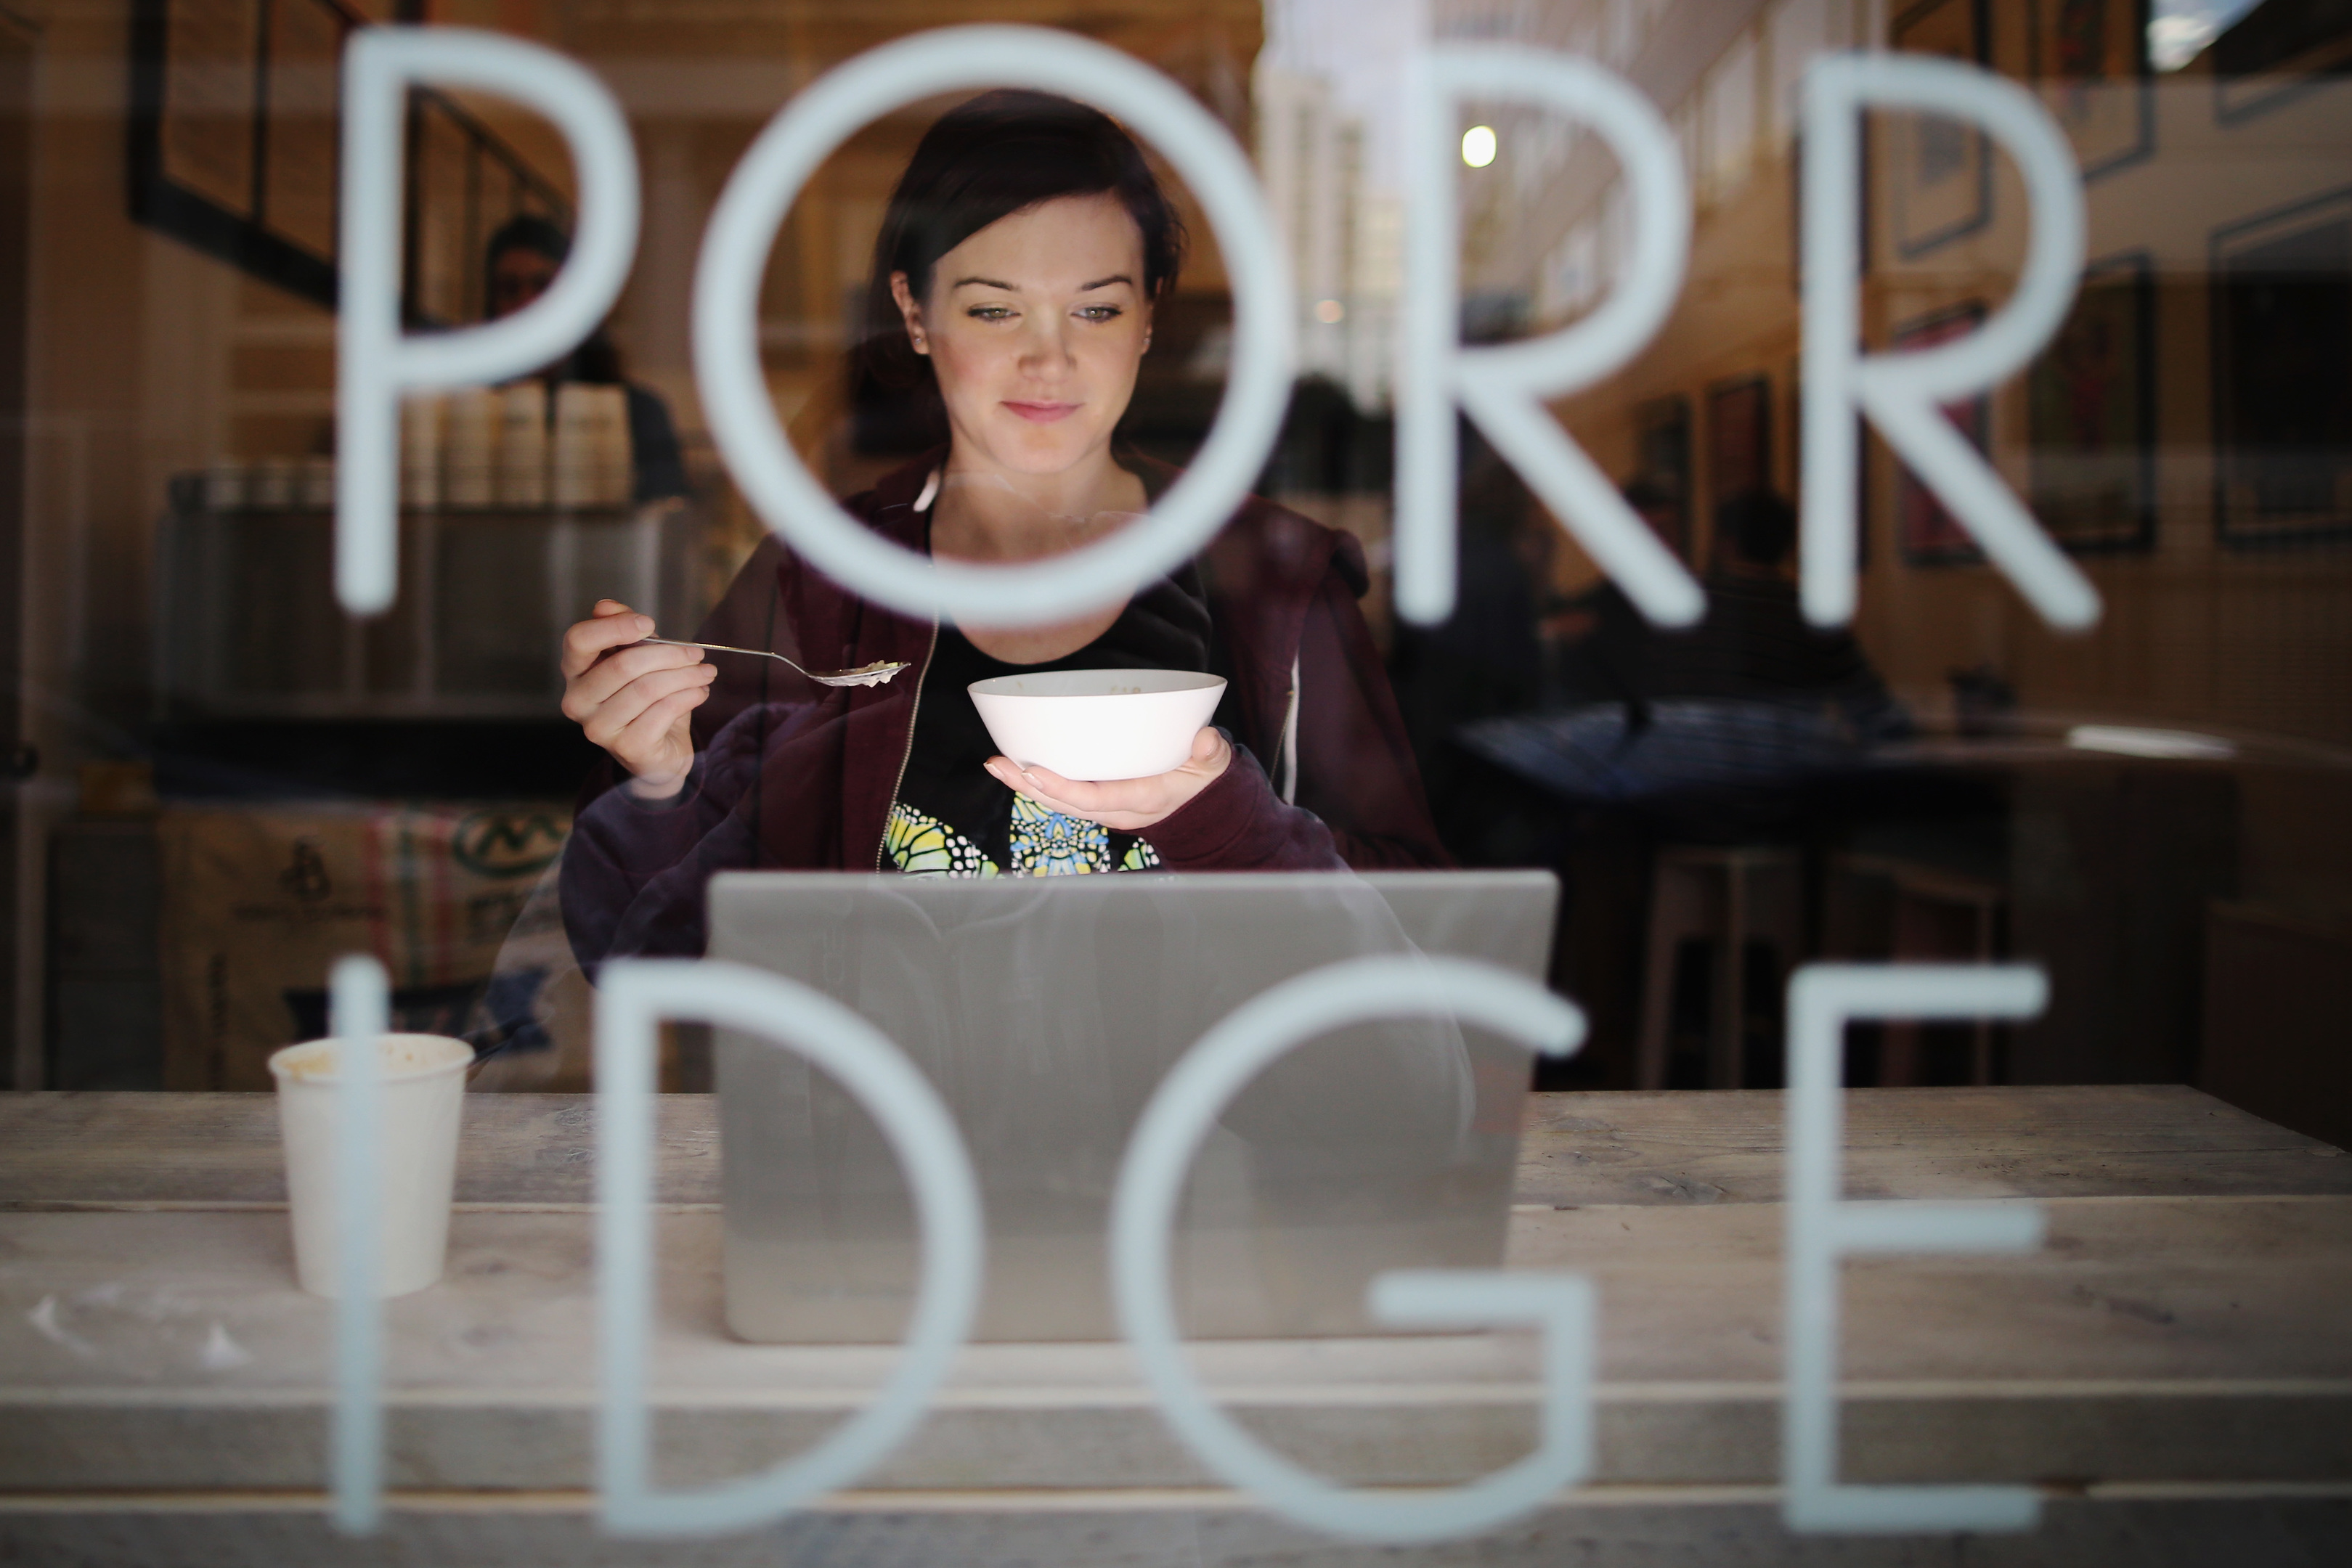 The Porridge Cafe (Dan Kitwood/Getty Images)